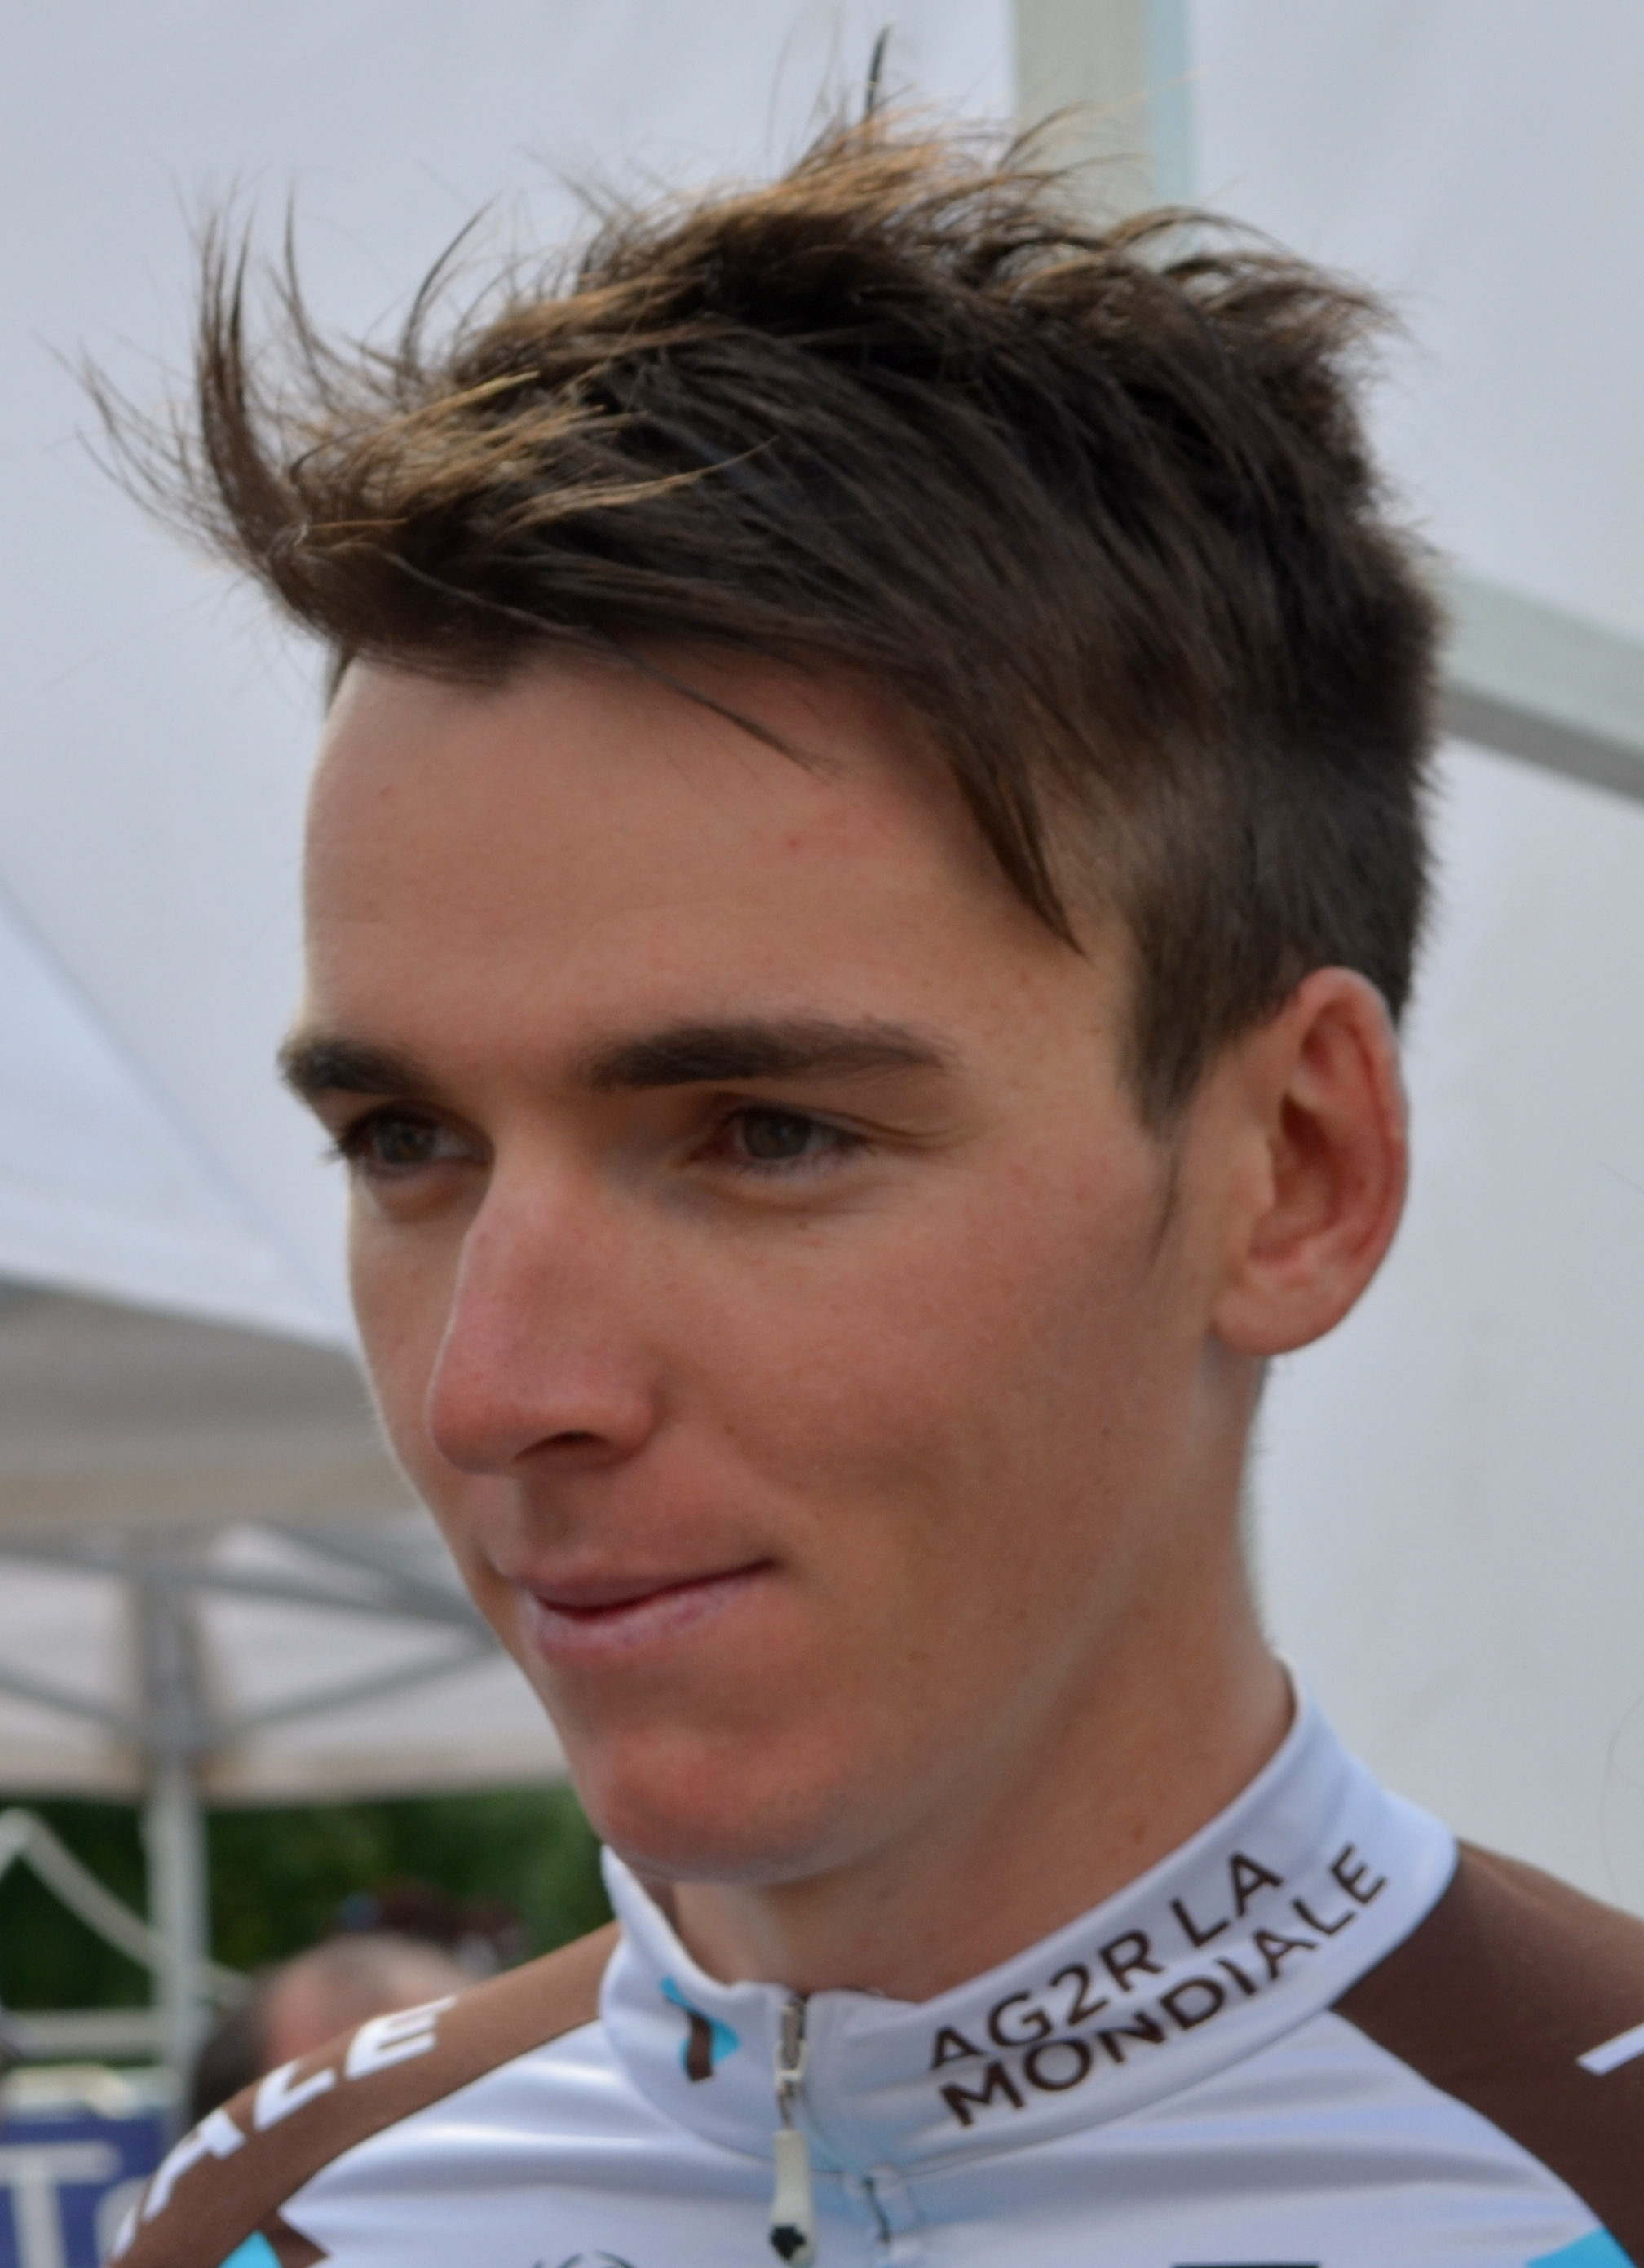 The 27-year old son of father (?) and mother(?) Romain Bardet in 2018 photo. Romain Bardet earned a  million dollar salary - leaving the net worth at 0.2 million in 2018